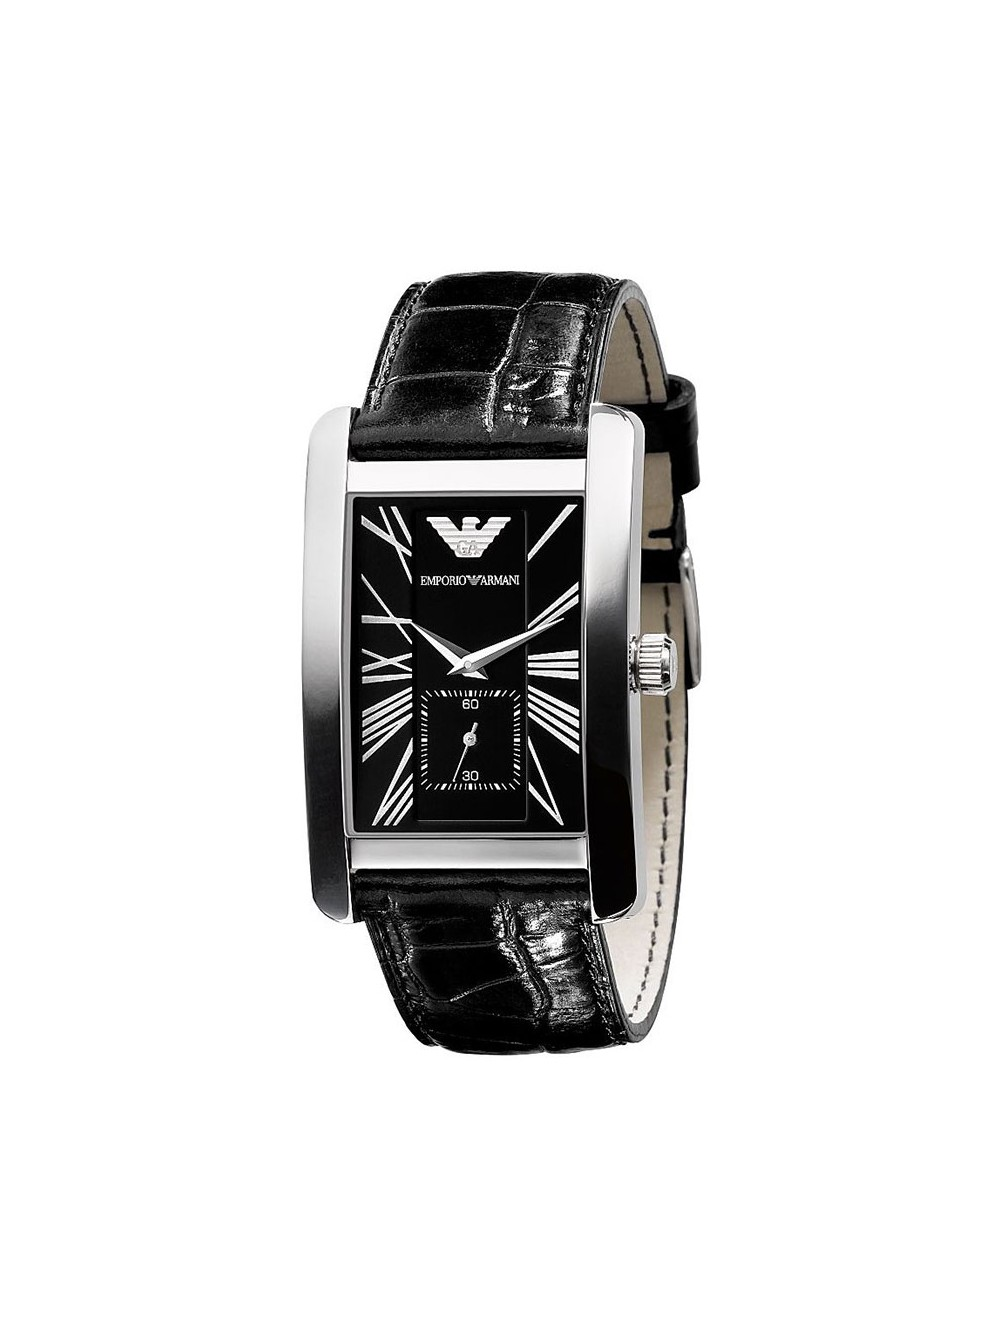 watches black strap gold gents gent leather rose image amp square watch s henry london heritage